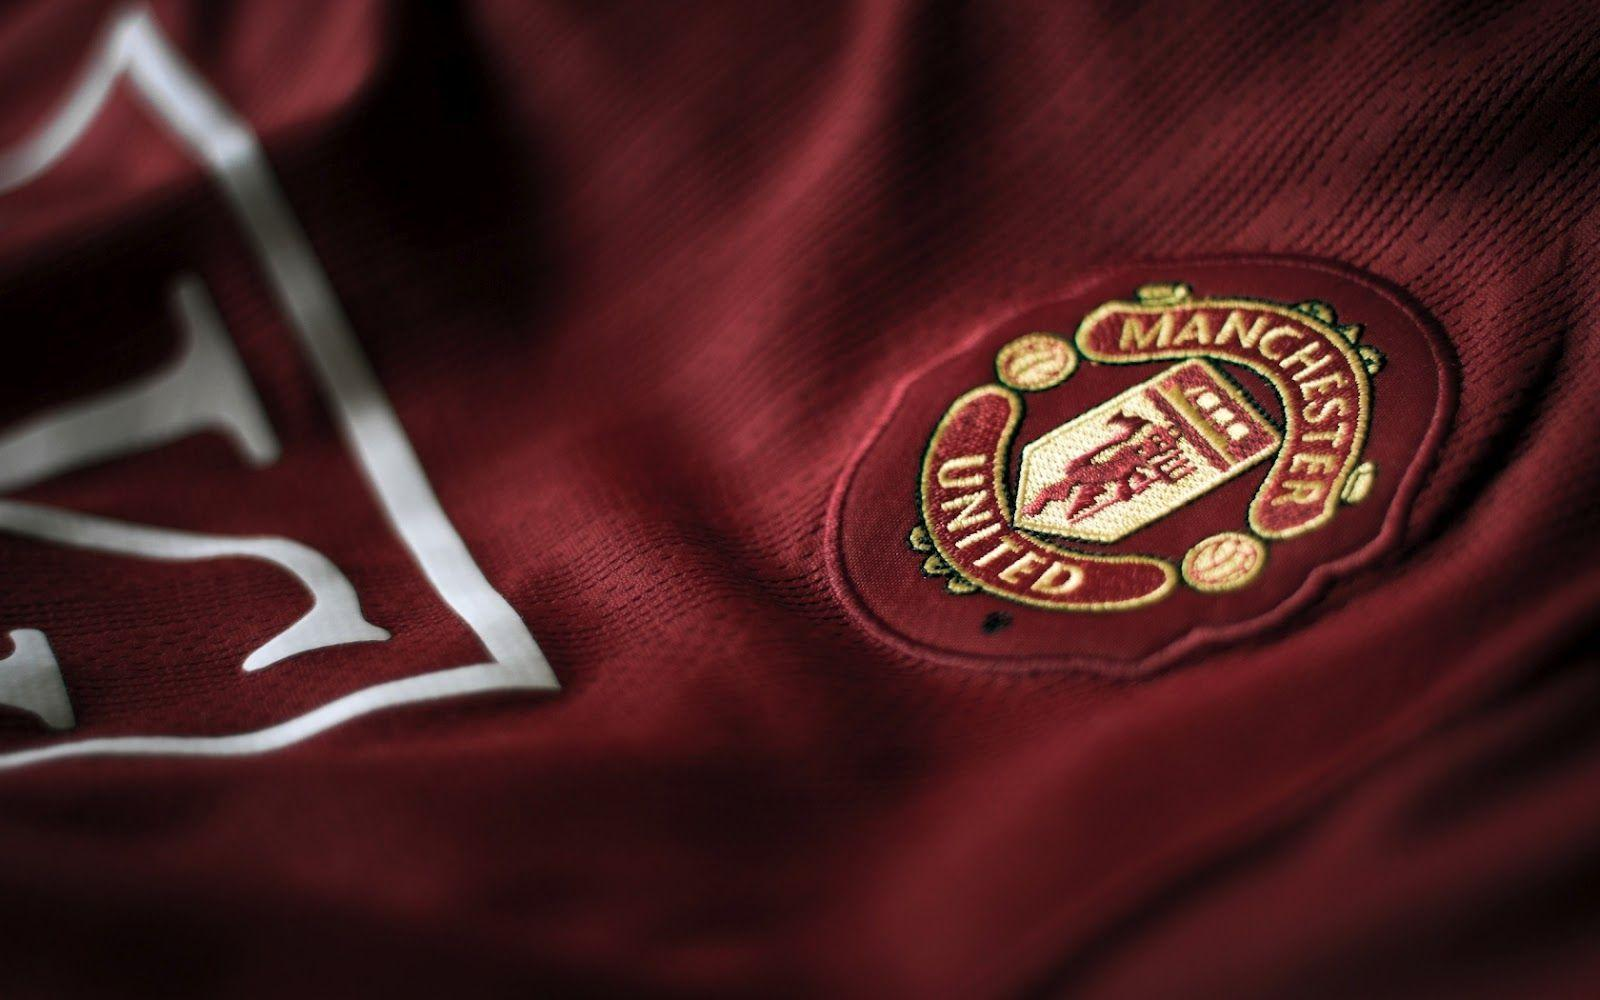 Manchester United Hd Wallpaper Free Download Wallpaper | Football ...